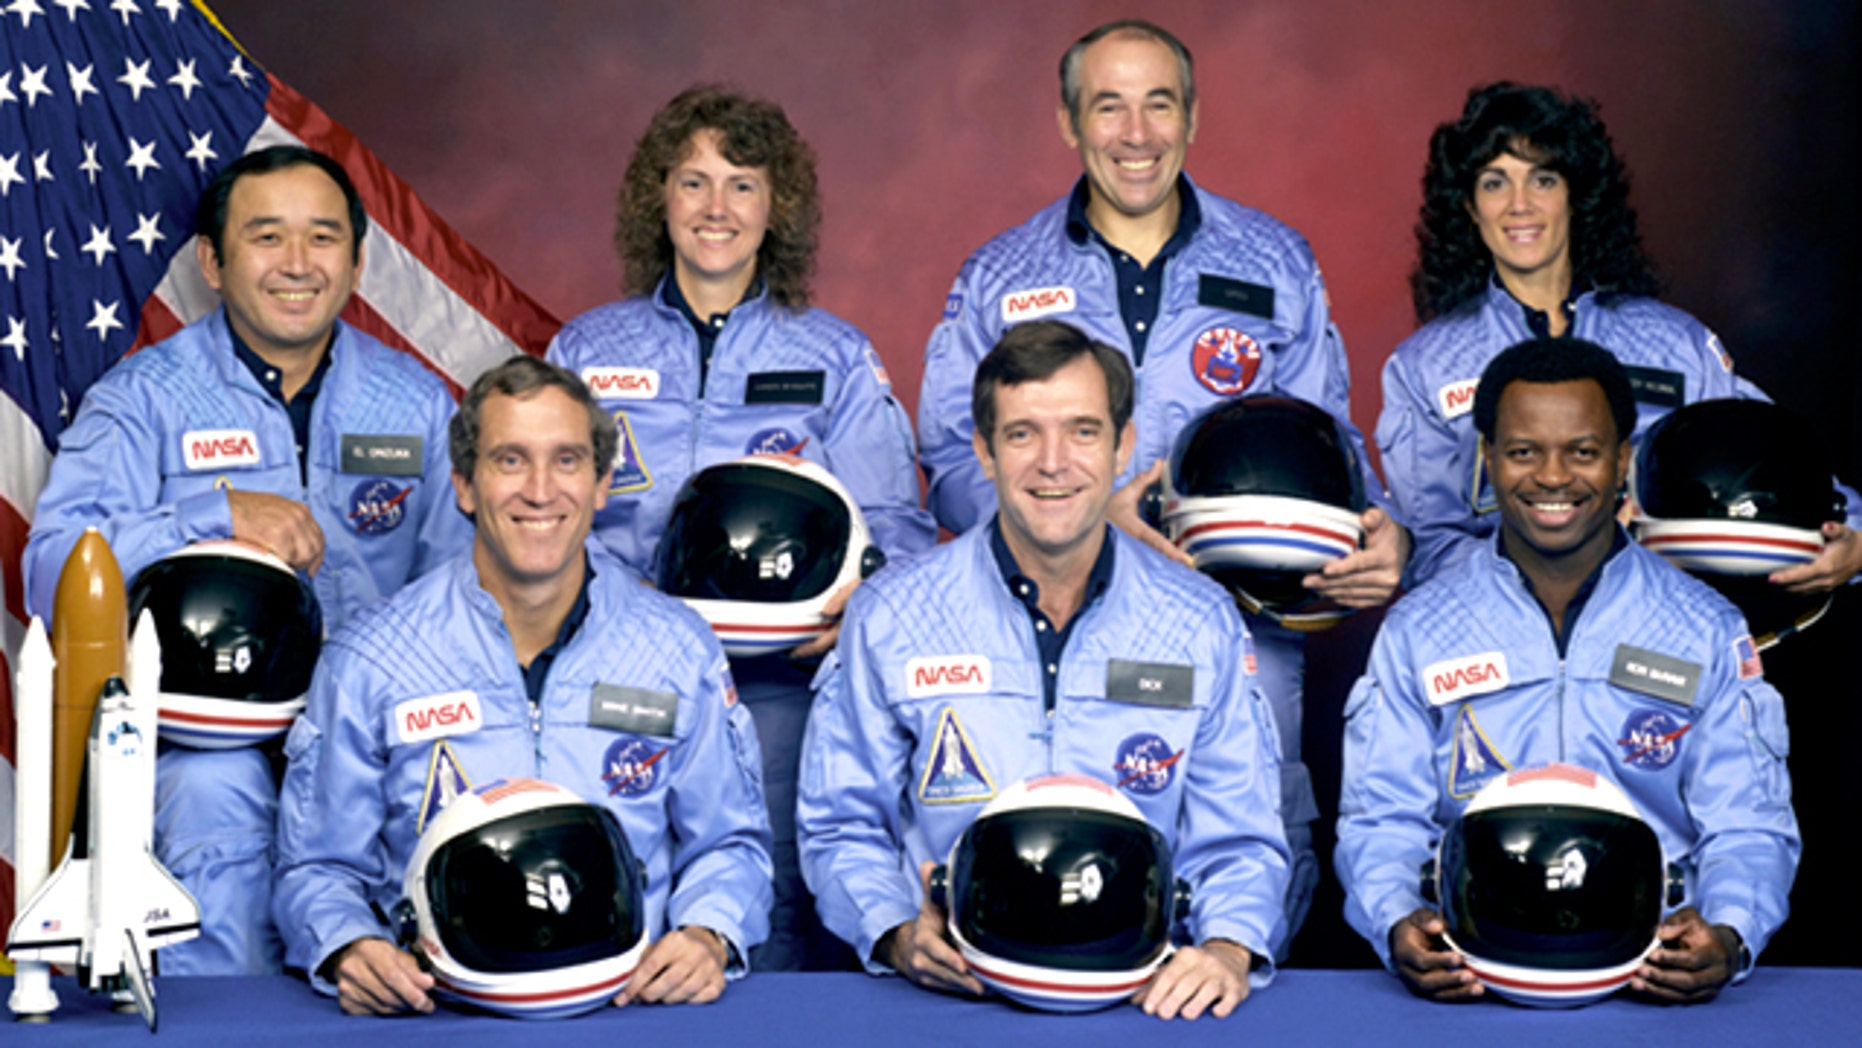 An official portrait shows the STS-51L crewmembers. Back row (L to R): Mission Specialist, Ellison S. Onizuka, Teacher in Space Participant Sharon Christa McAuliffe, Payload Specialist, Greg Jarvis and Mission Specialist, Judy Resnik. Front row (L to R): Pilot Mike Smith, Commander, Dick Scobee and Mission Specialist, Ron McNair.